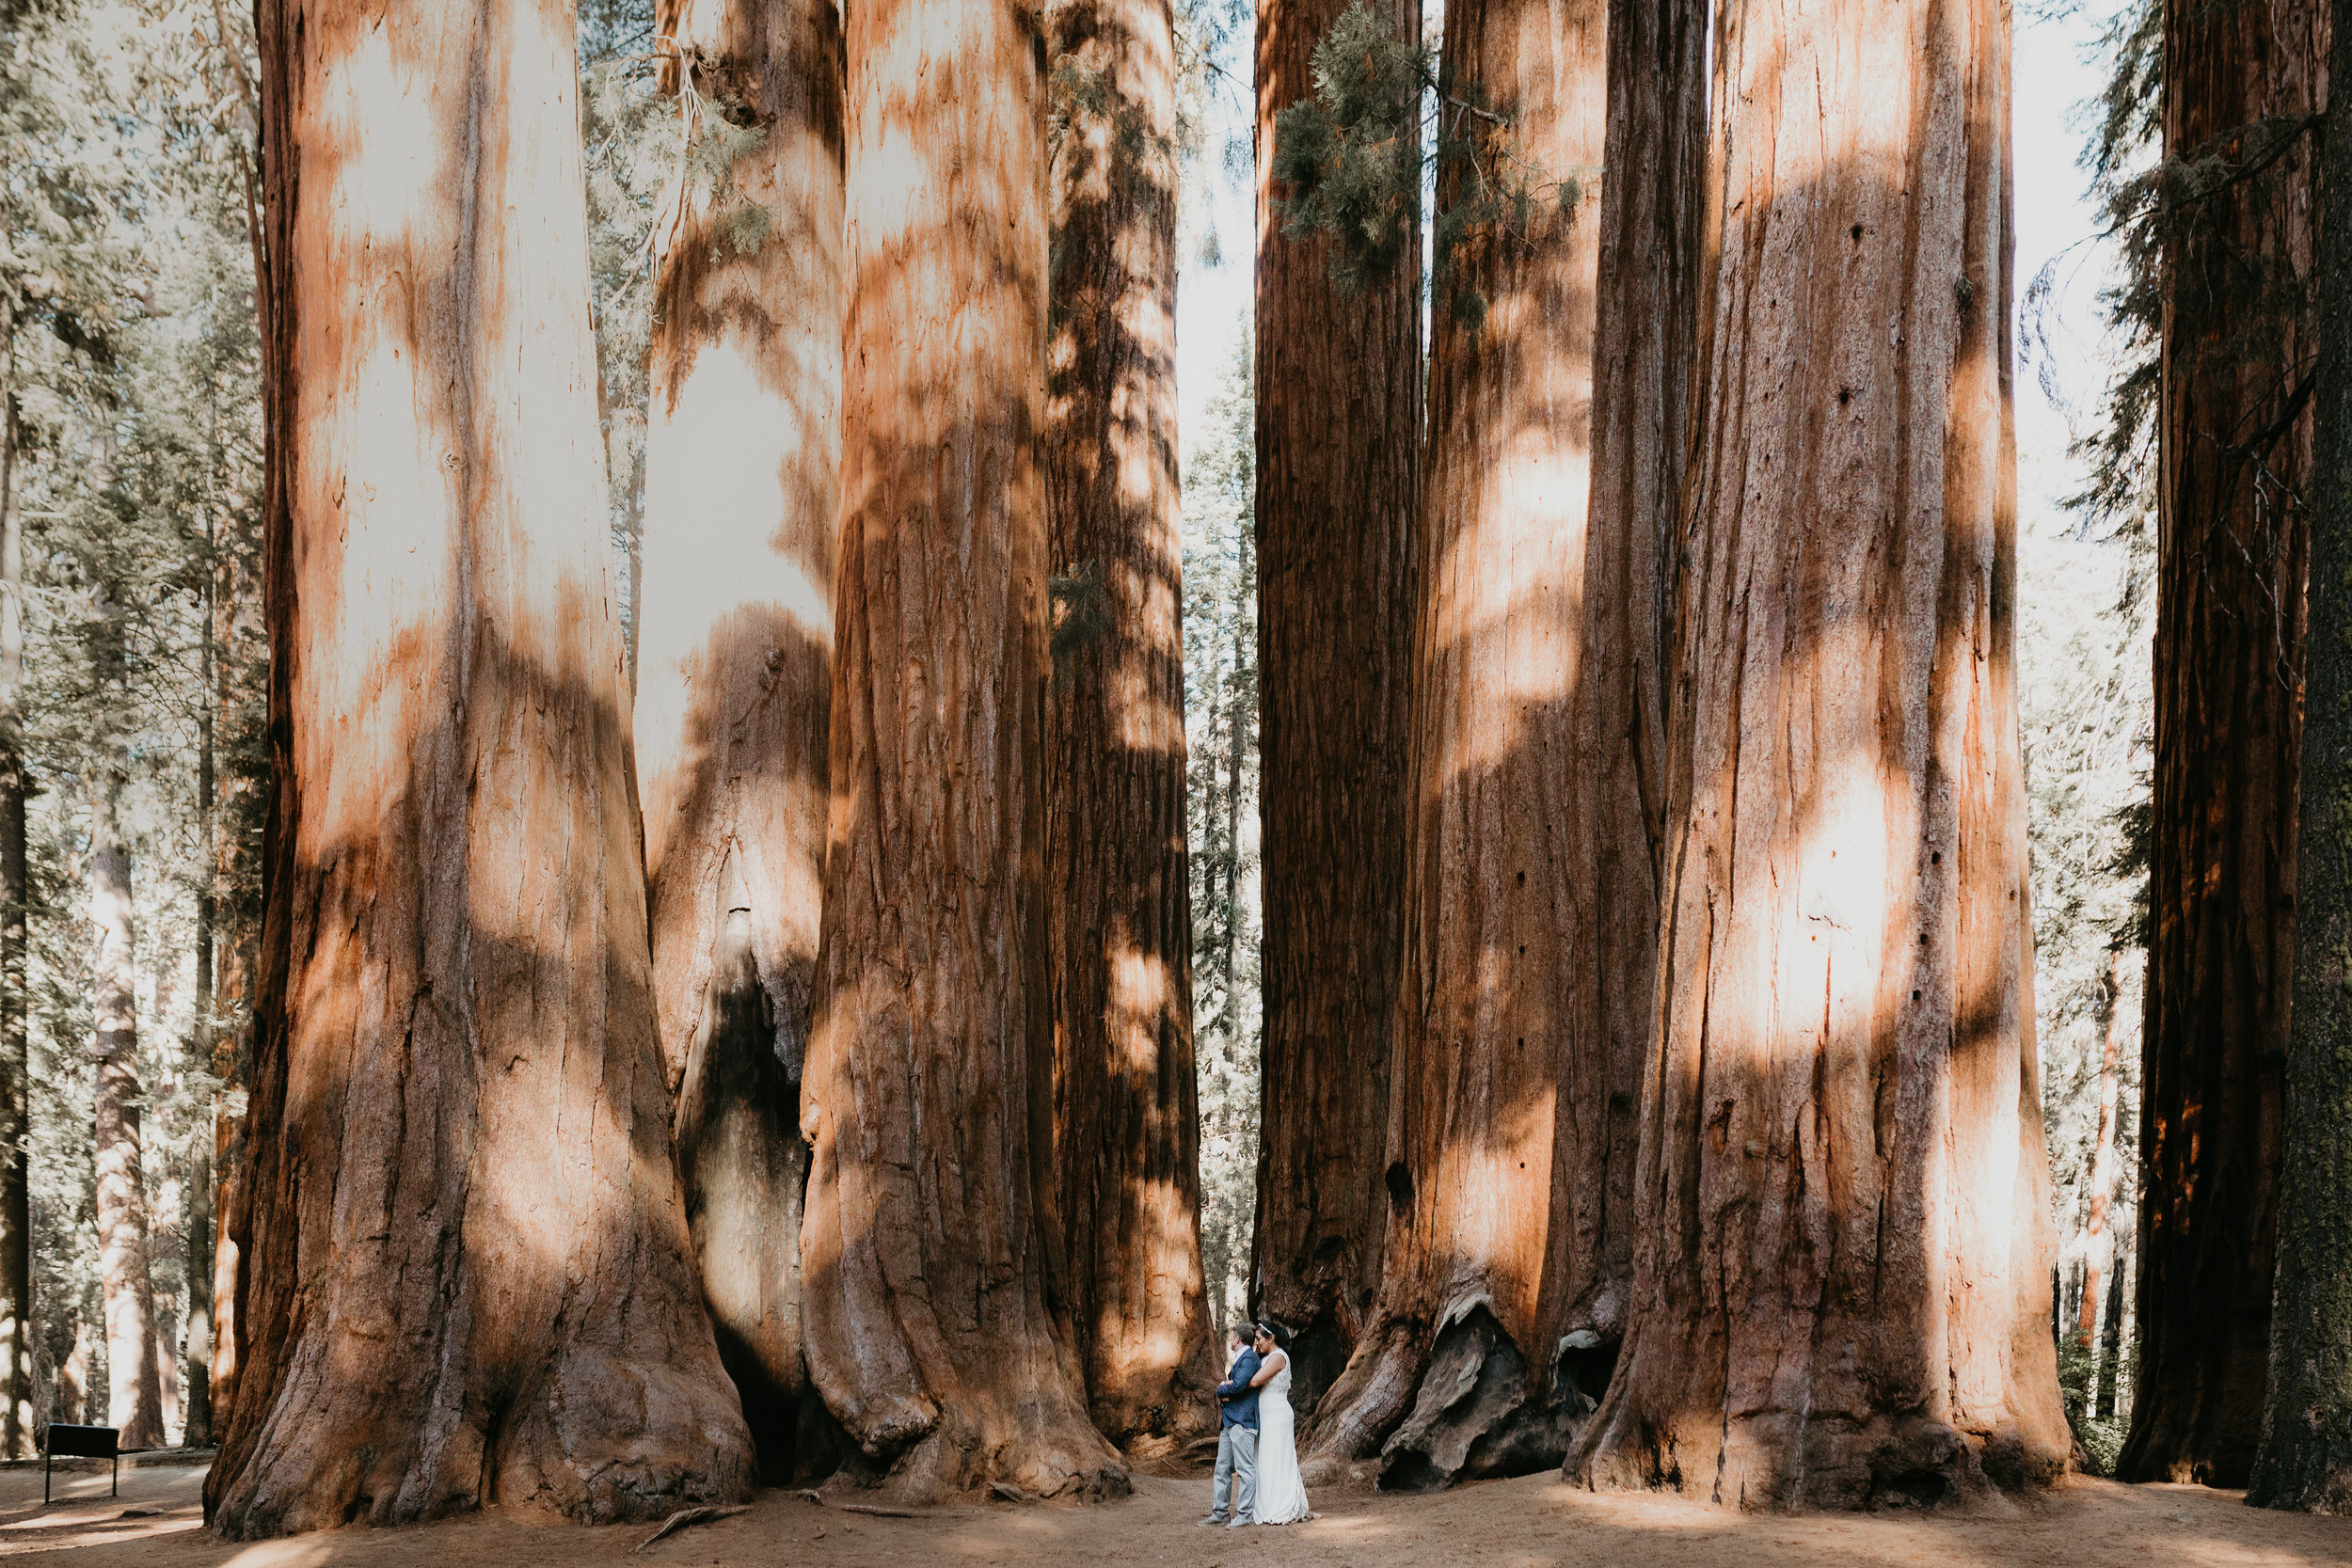 nicole-daacke-photography-sequoia-national-park-adventurous-elopement-sequoia-elopement-photographer-redwoods-california-intimate-wedding-photographer-16.jpg